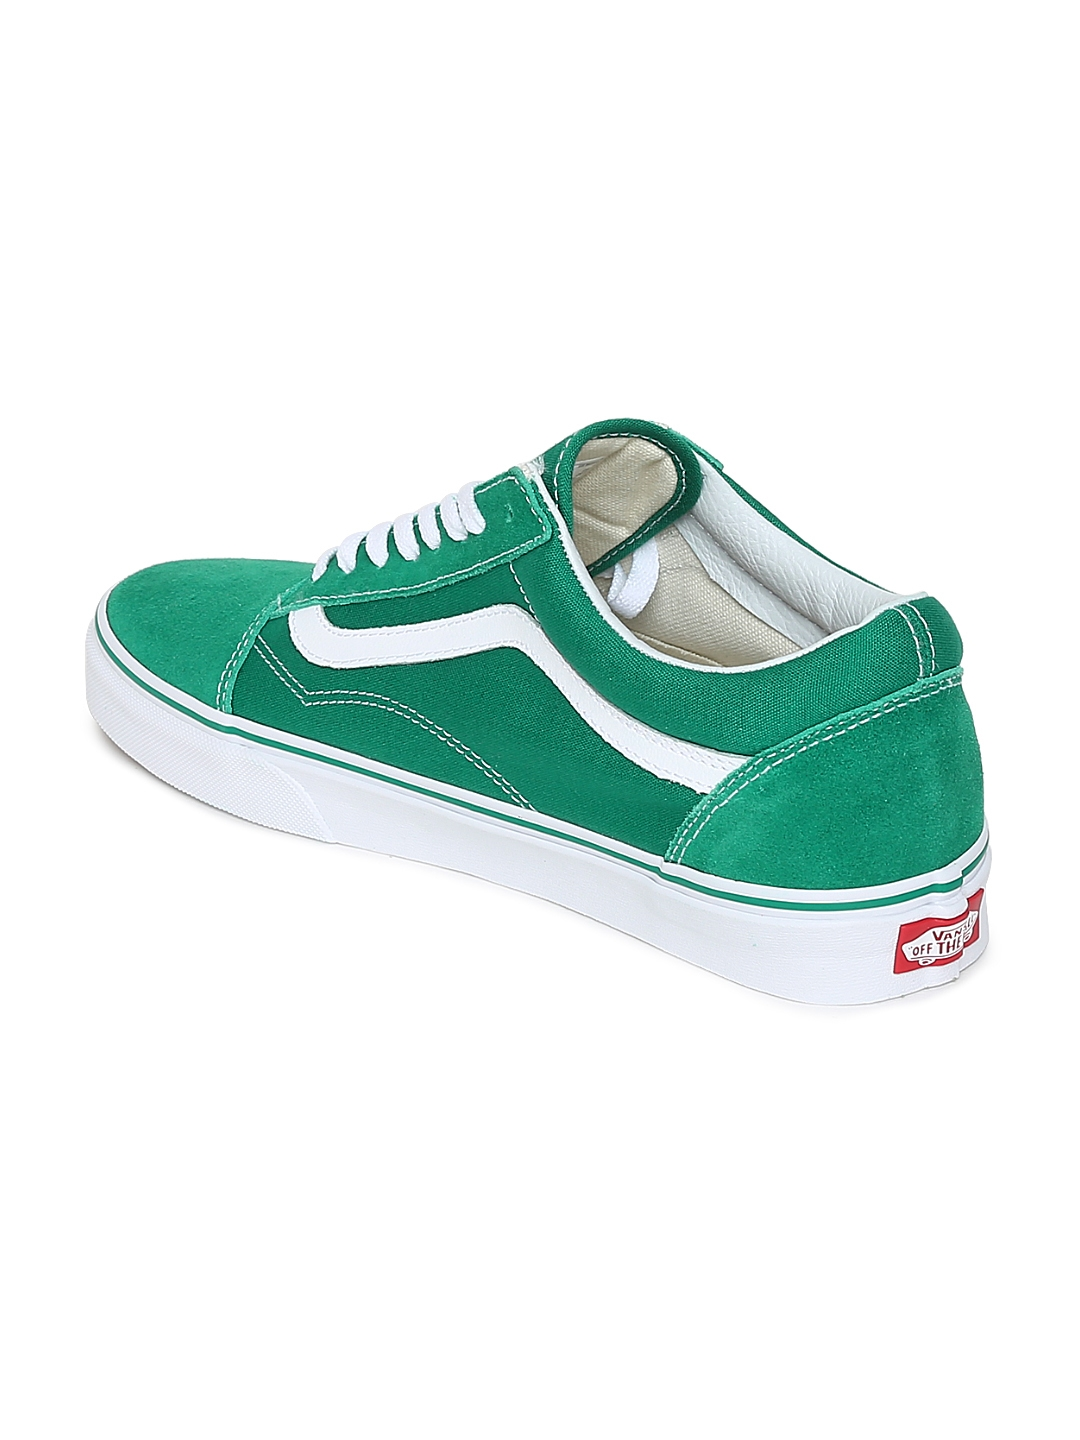 7237e79f99 Buy Vans Unisex Green OLD SKOOL Sneakers - Casual Shoes for Unisex ...